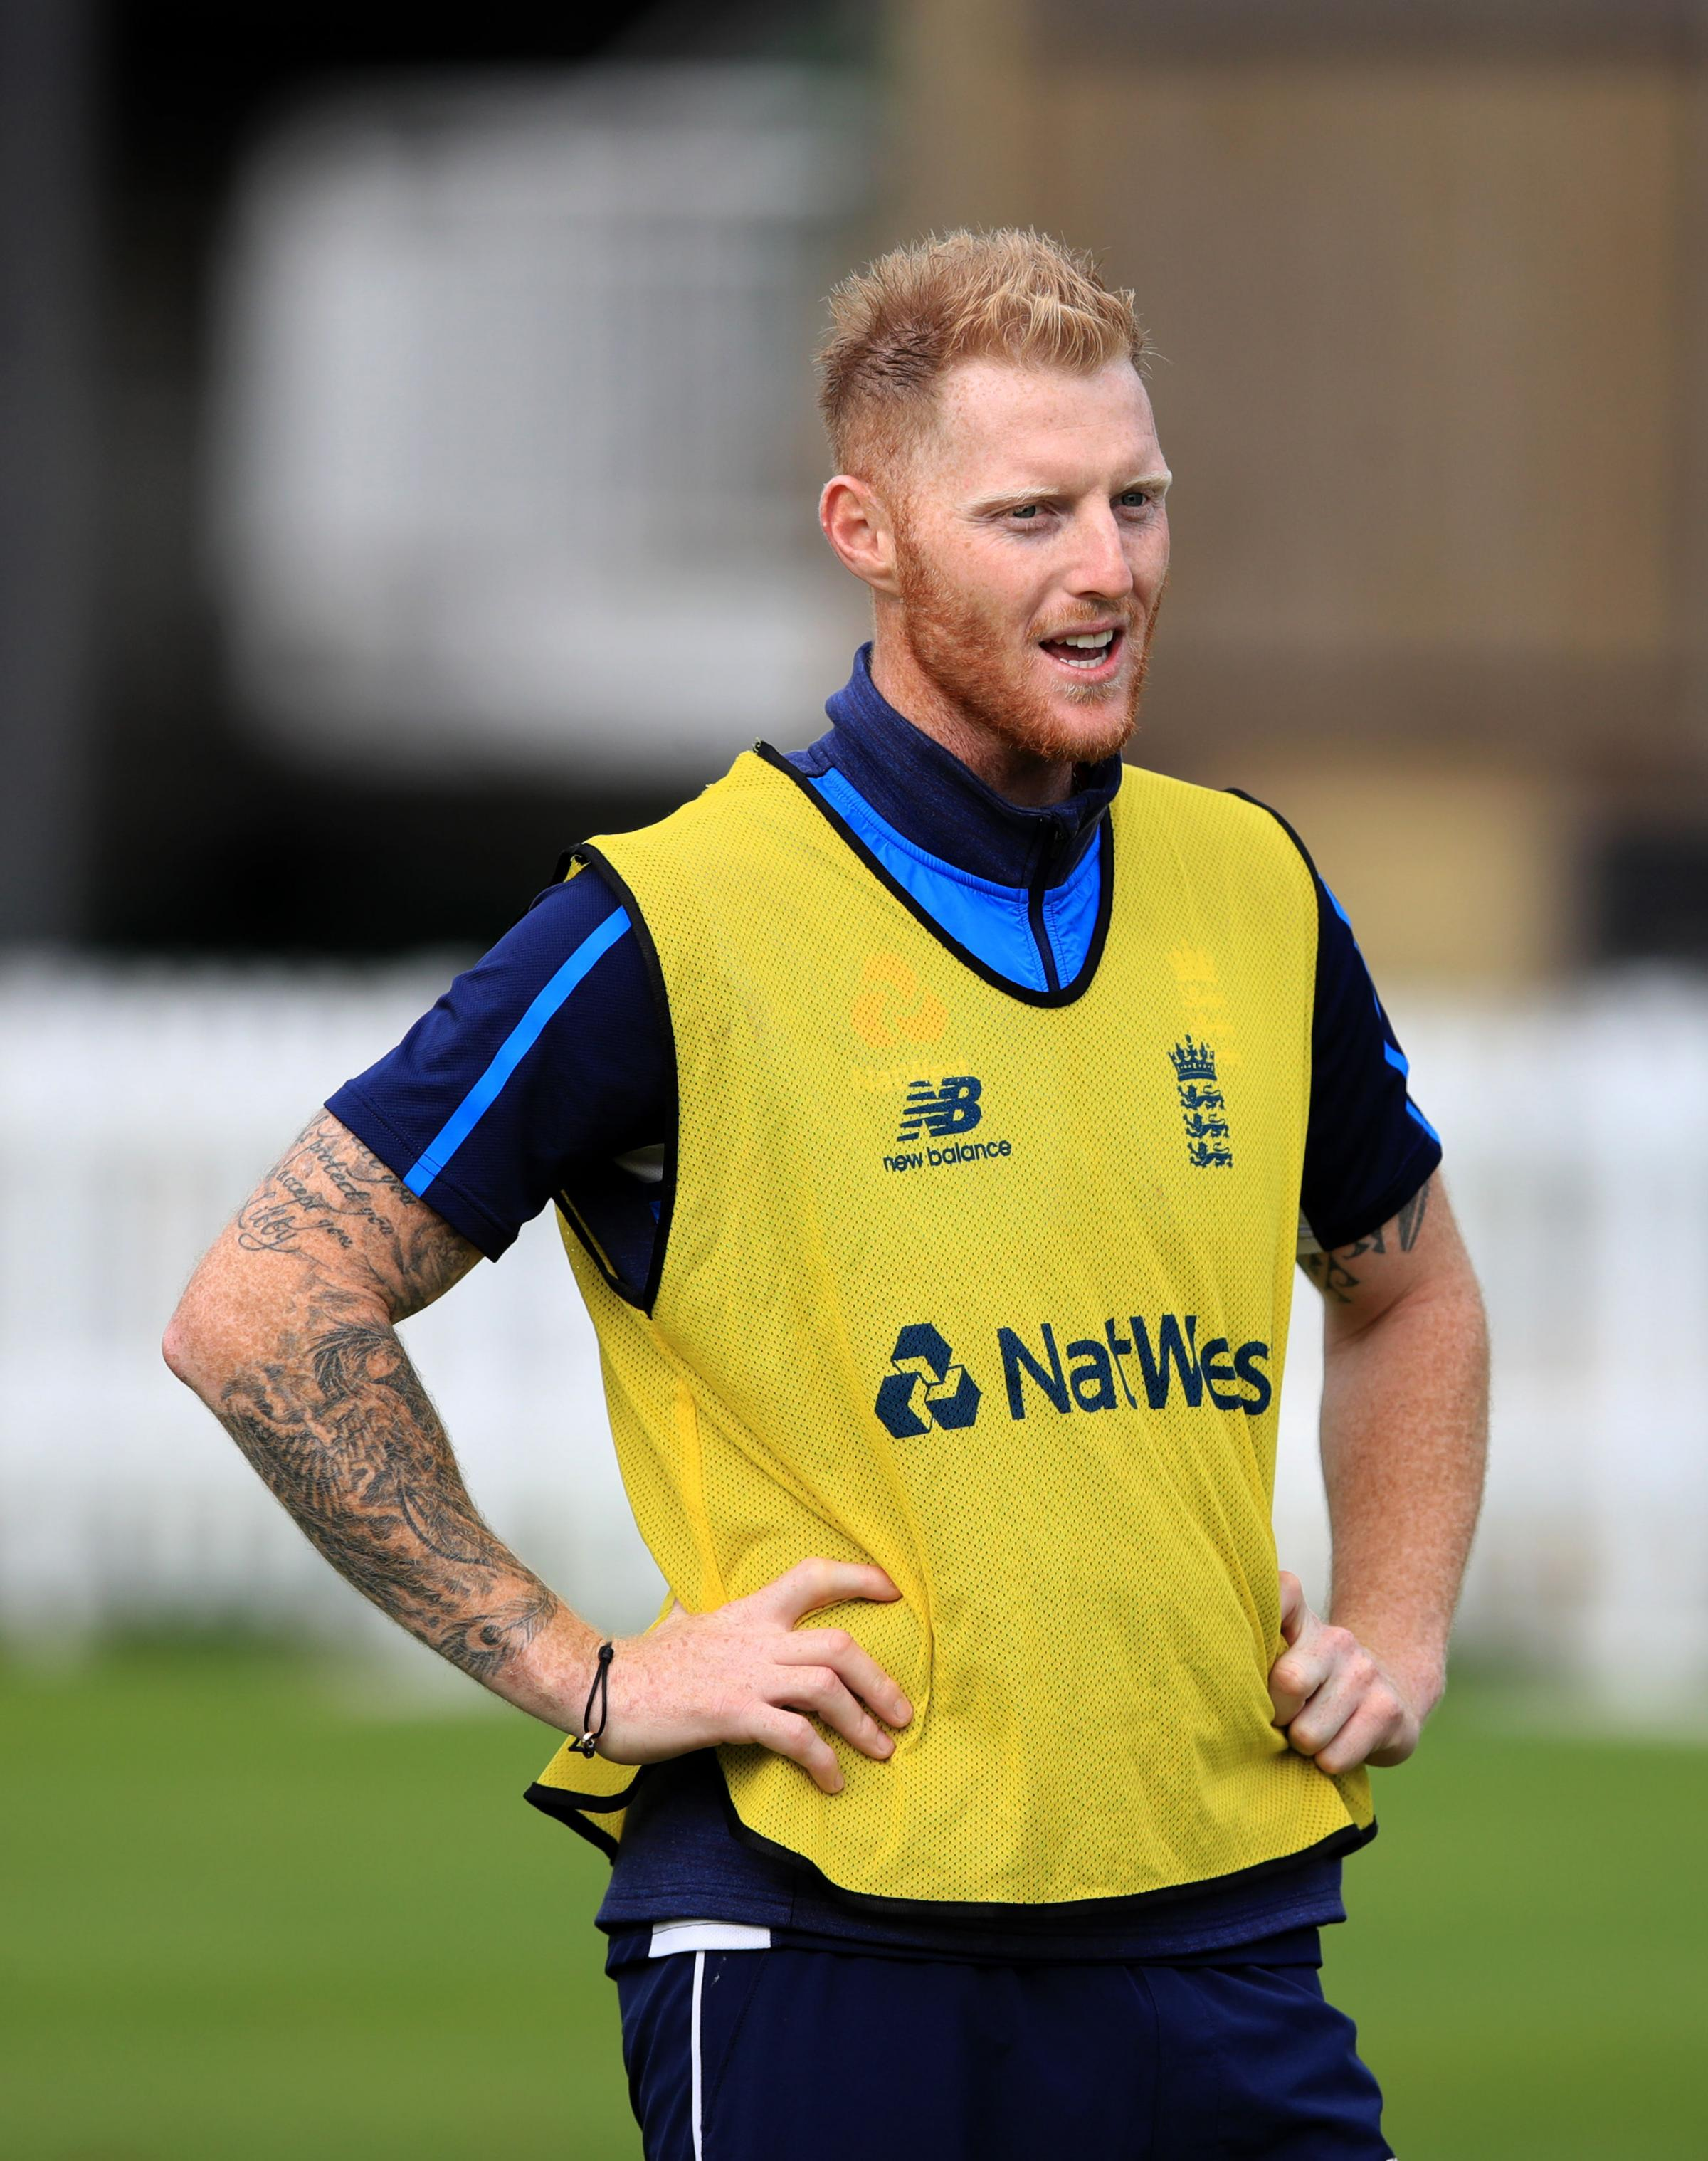 Ben Stokes has been named in the England Ashes Test squad despite his arrest on suspicion of causing actual bodily harm.